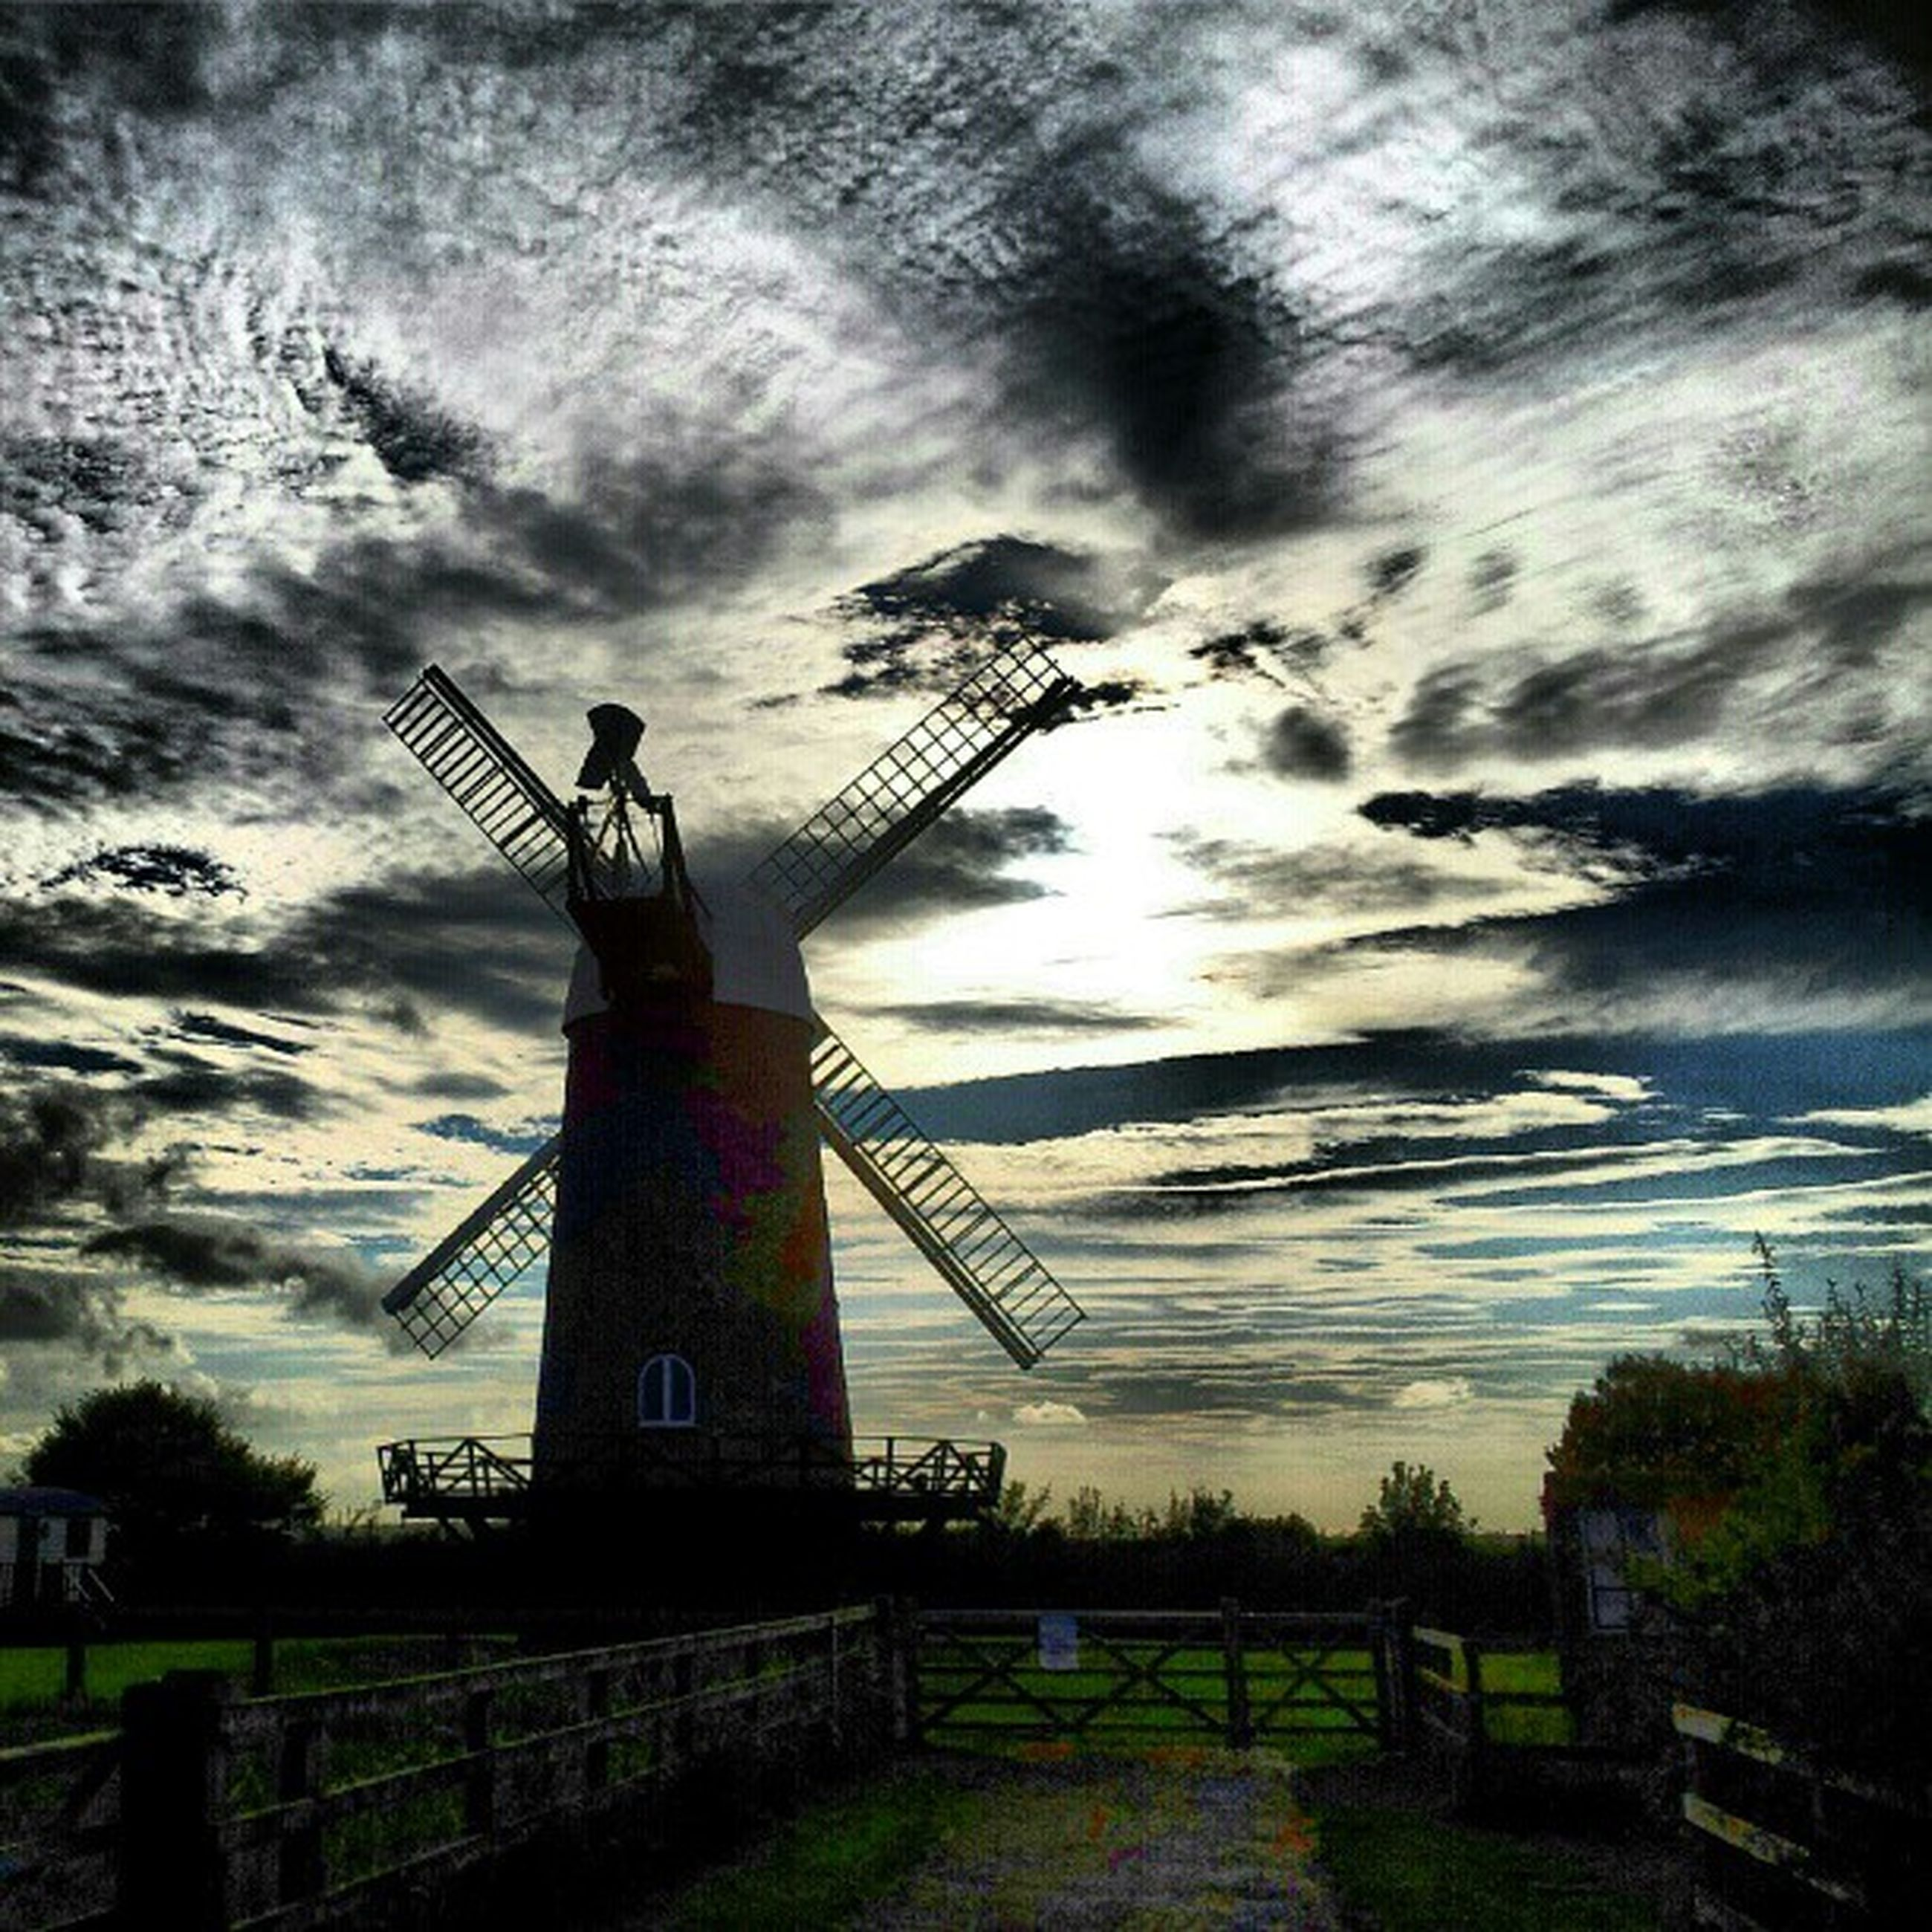 sky, cloud - sky, cloudy, sunset, field, cloud, fuel and power generation, silhouette, built structure, low angle view, lighthouse, nature, dusk, weather, landscape, dramatic sky, technology, tranquility, guidance, architecture